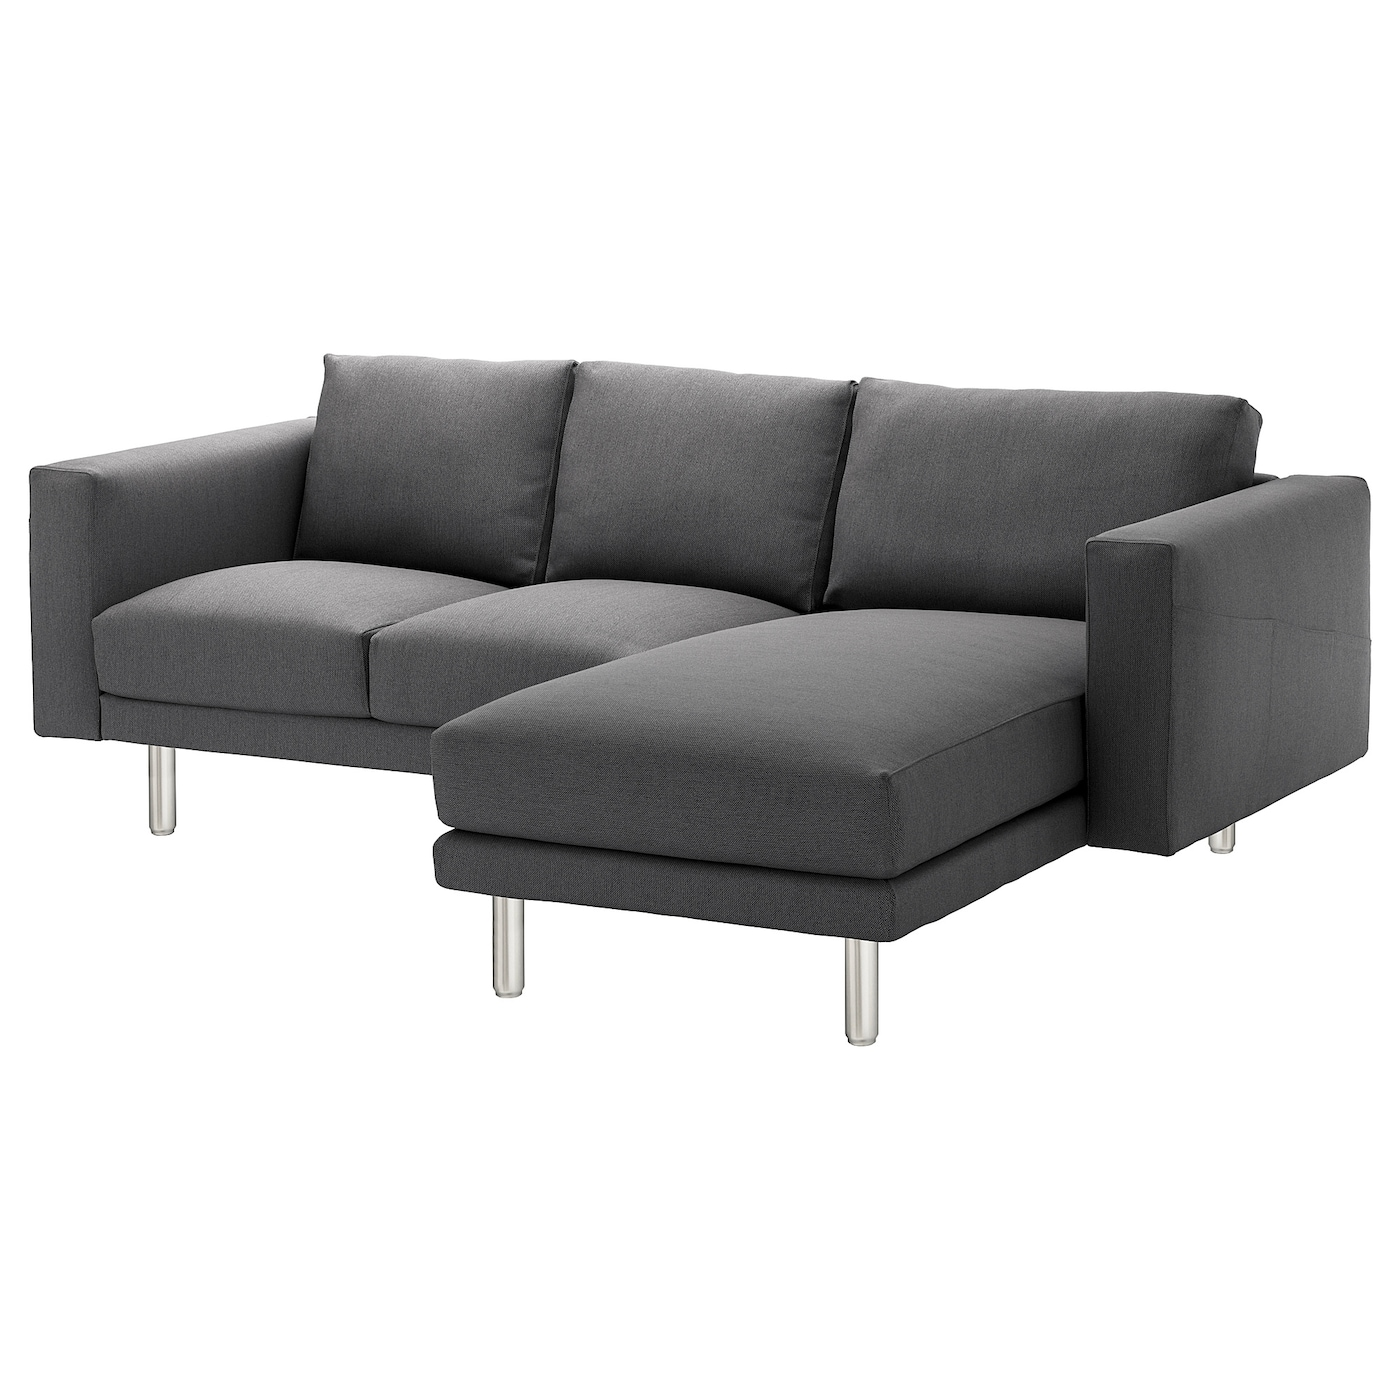 norsborg 3 seat sofa with chaise longue finnsta dark grey metal ikea. Black Bedroom Furniture Sets. Home Design Ideas